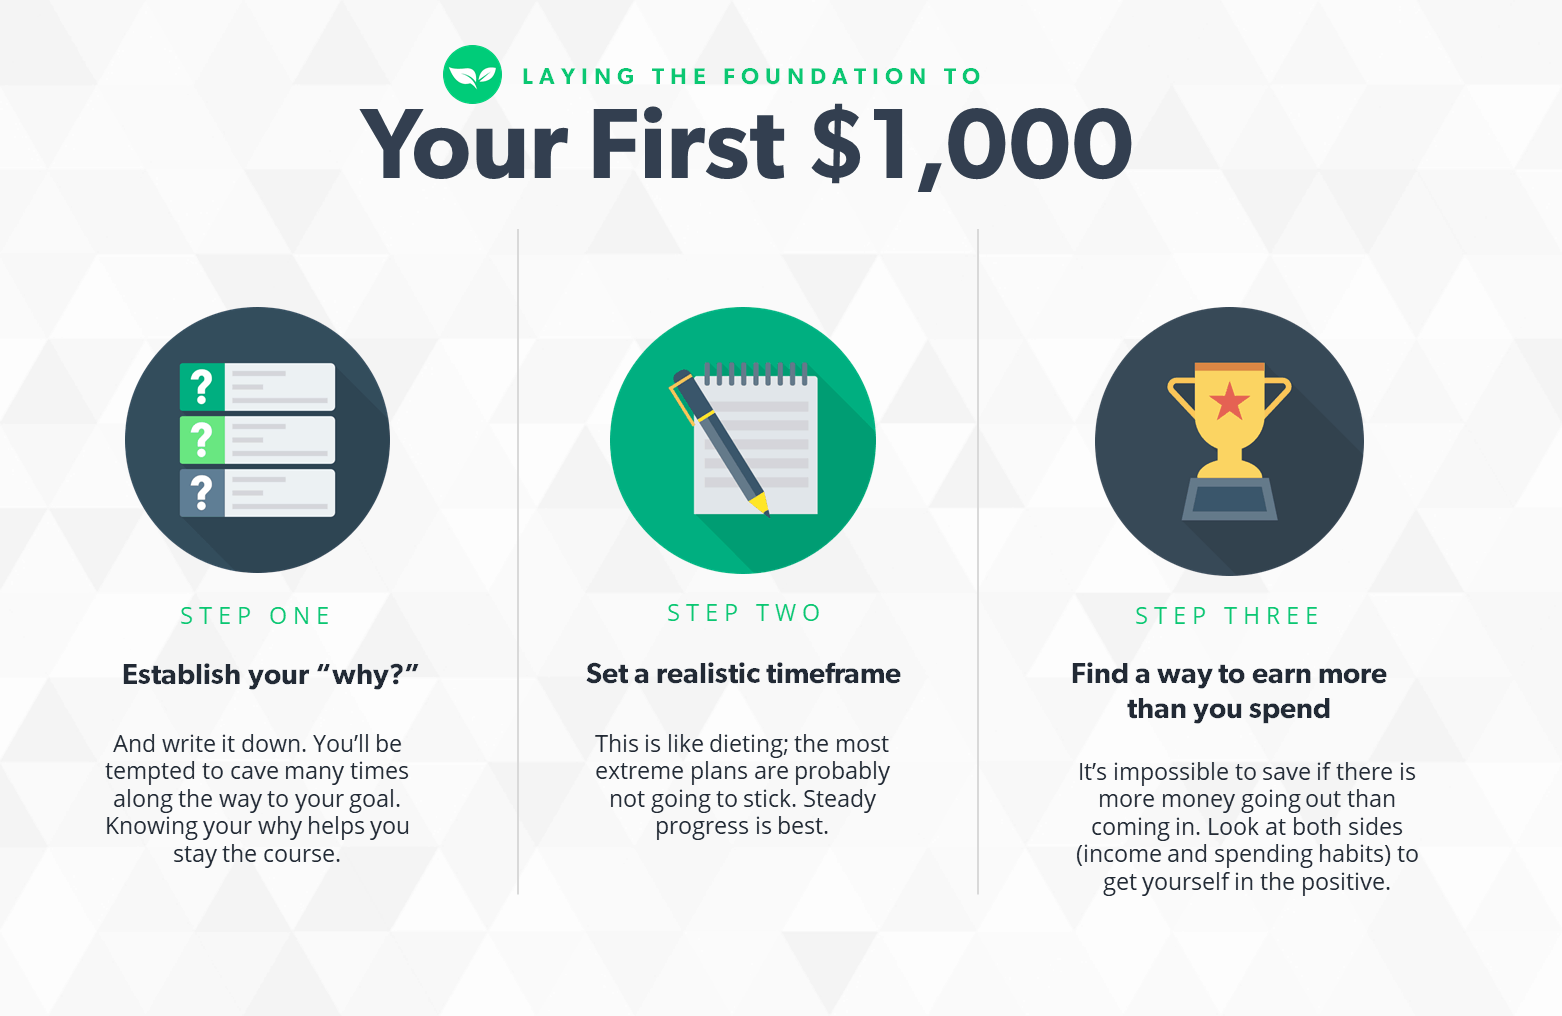 Infographic showing the first steps to saving your first $1,000. Step 1, Establish your Why. Step 2, Set a Realistic Timeframe. Step 3, Make more money than you spend.